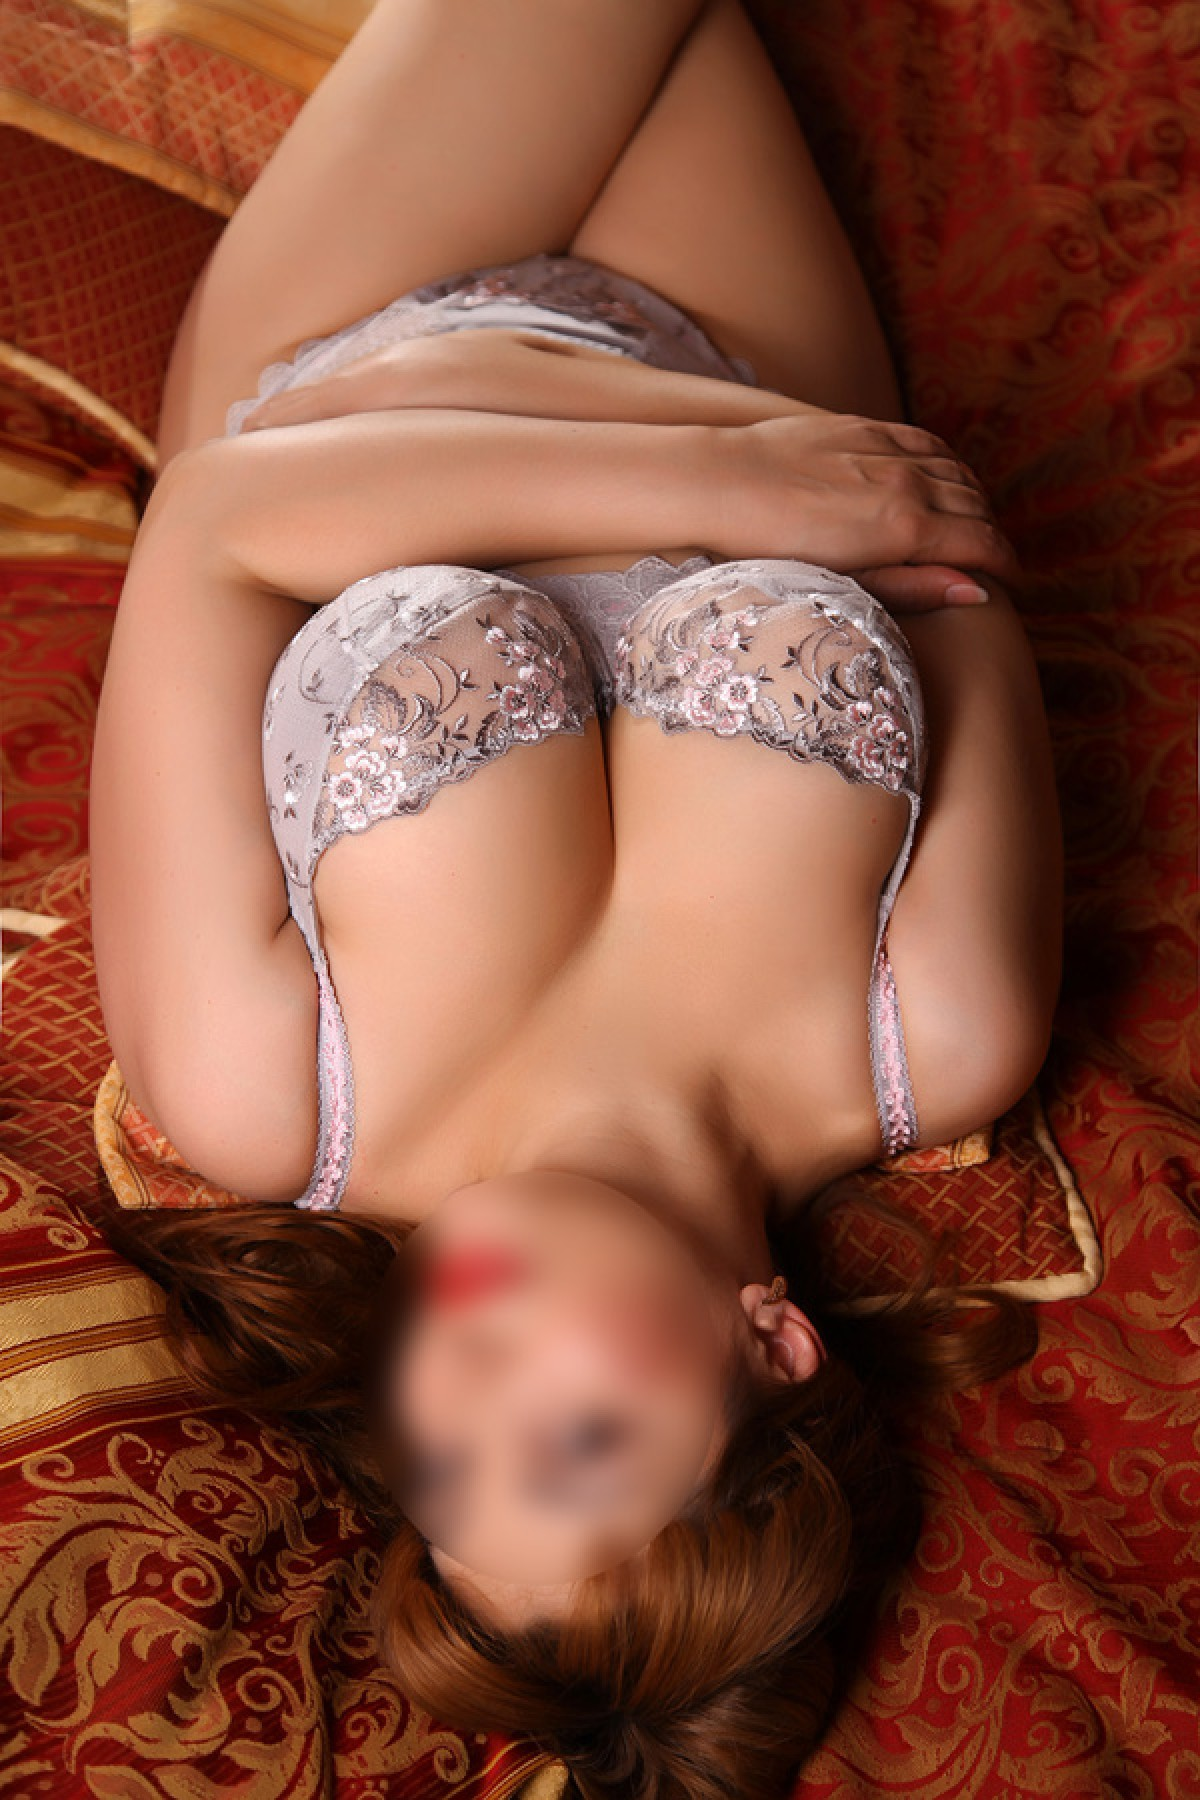 real british escort lingam massage prague